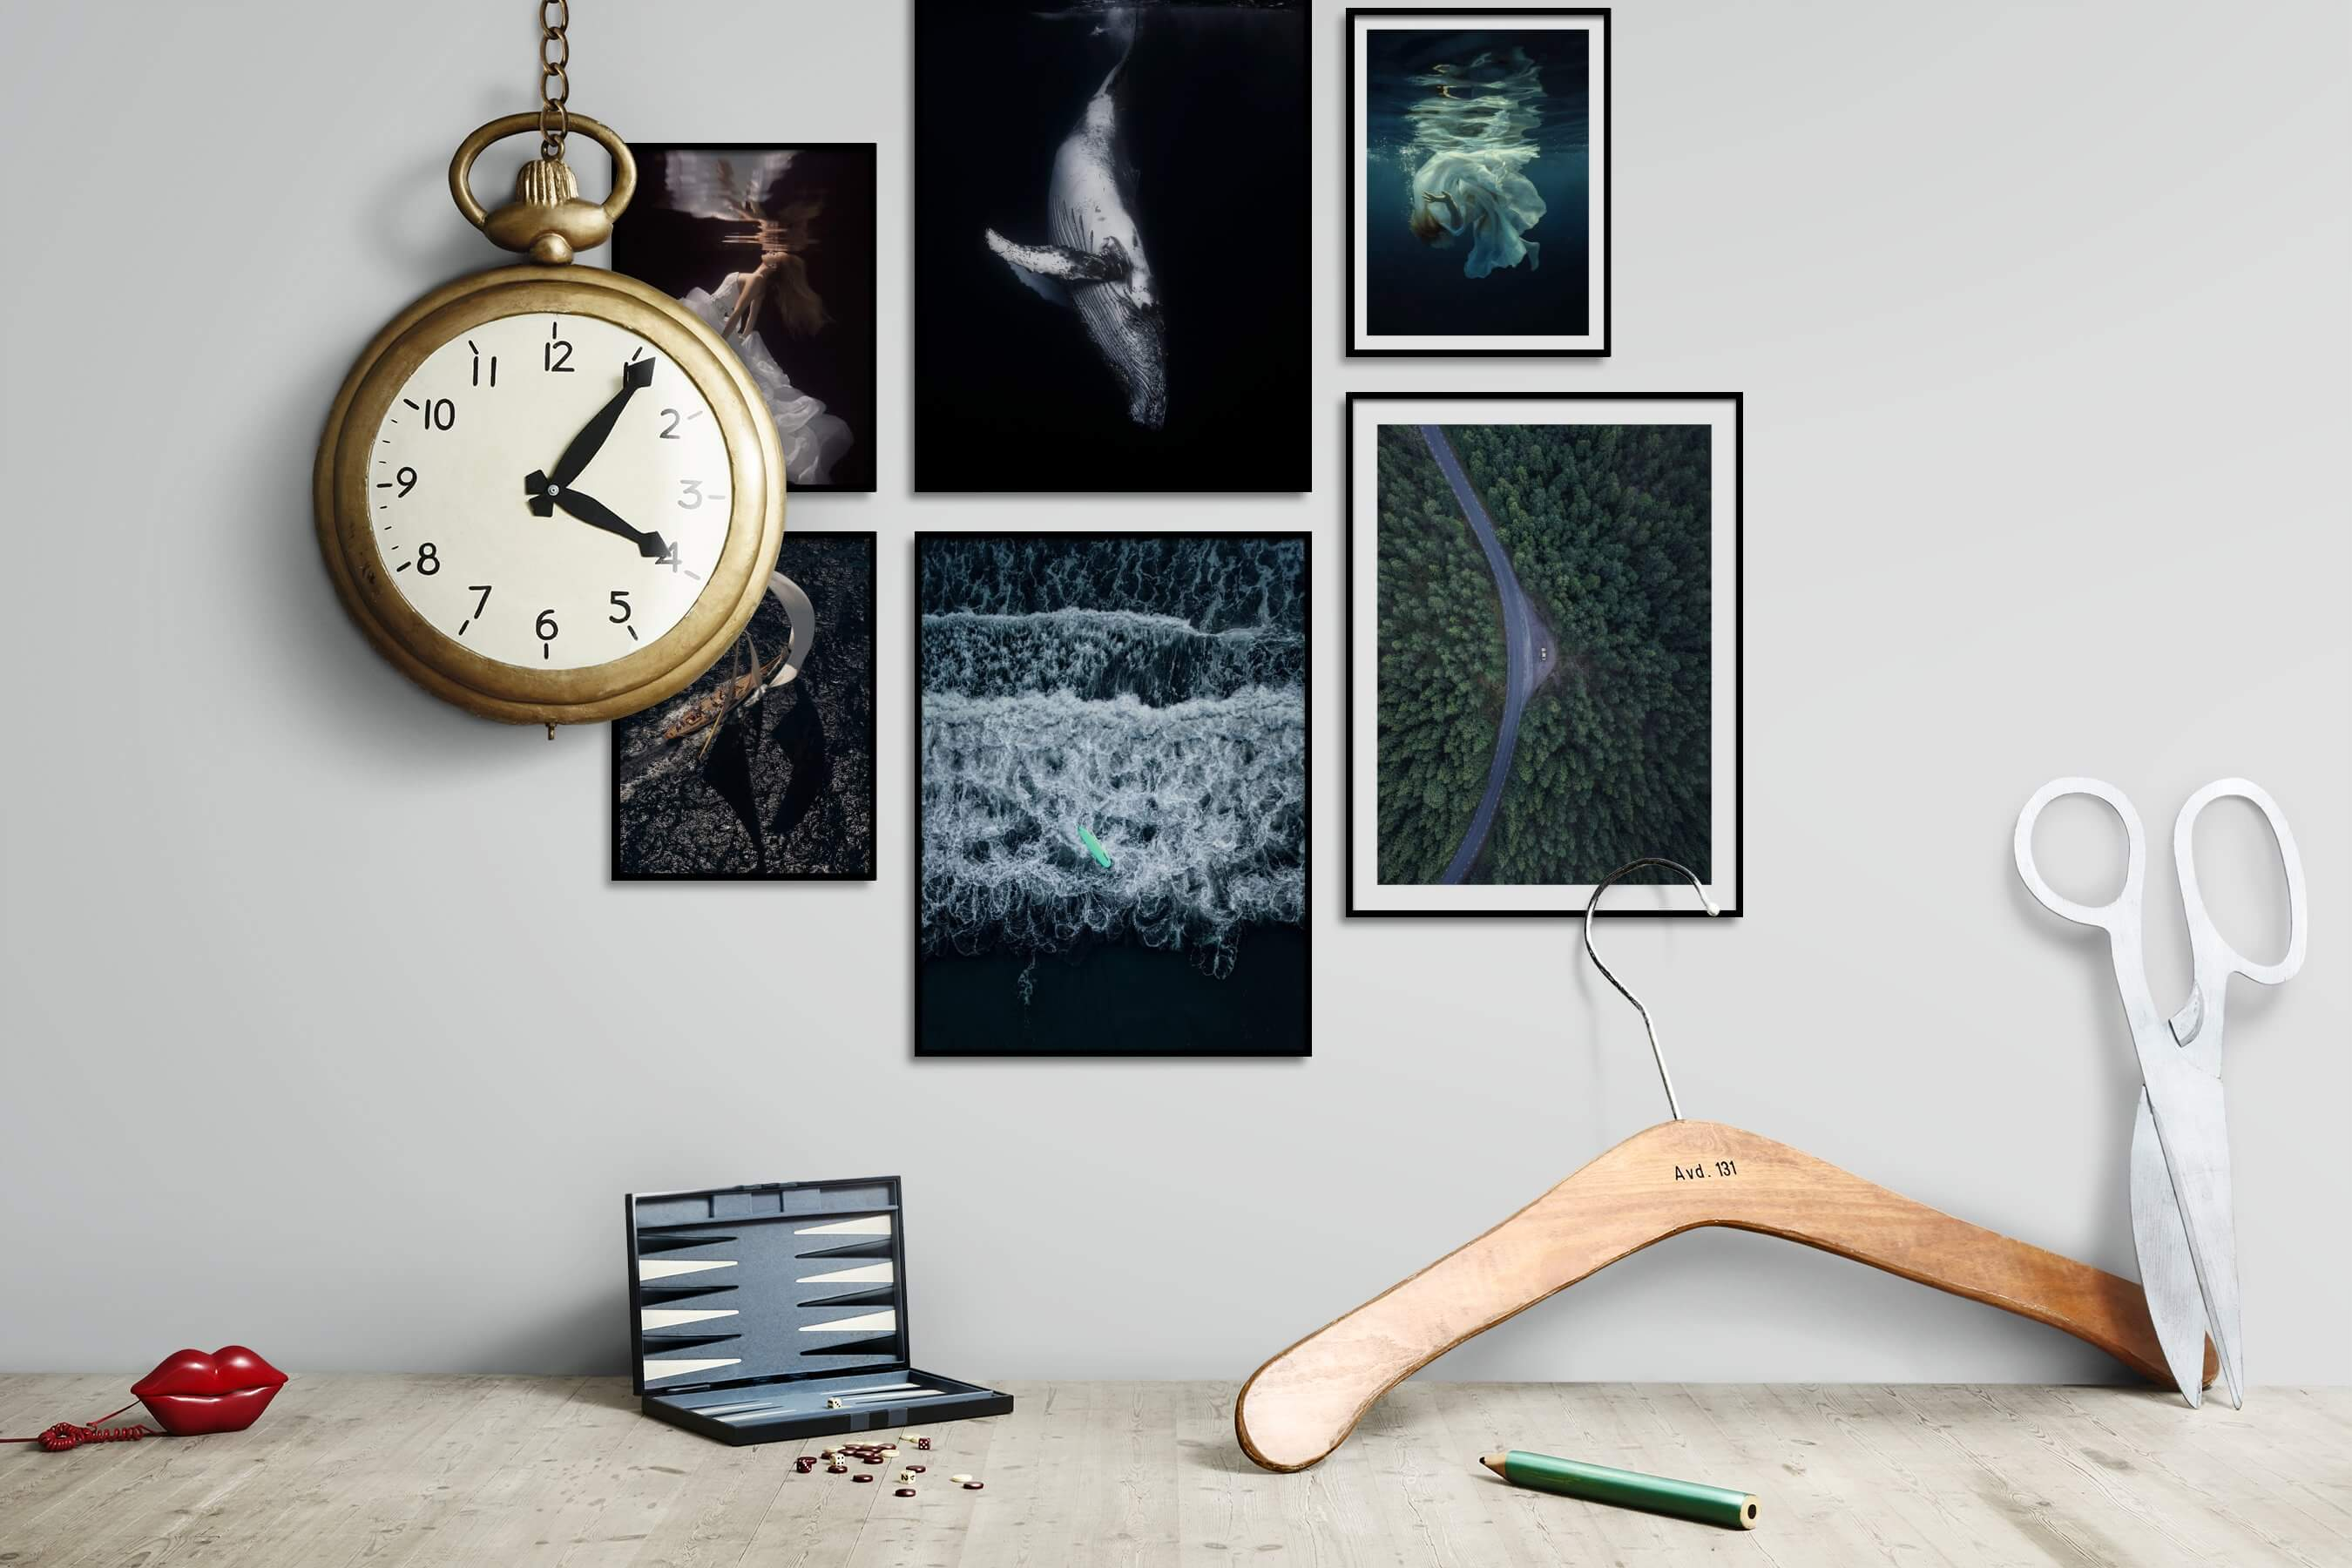 Gallery wall idea with six framed pictures arranged on a wall depicting Fashion & Beauty, Beach & Water, Black & White, Dark Tones, Animals, For the Moderate, and Nature